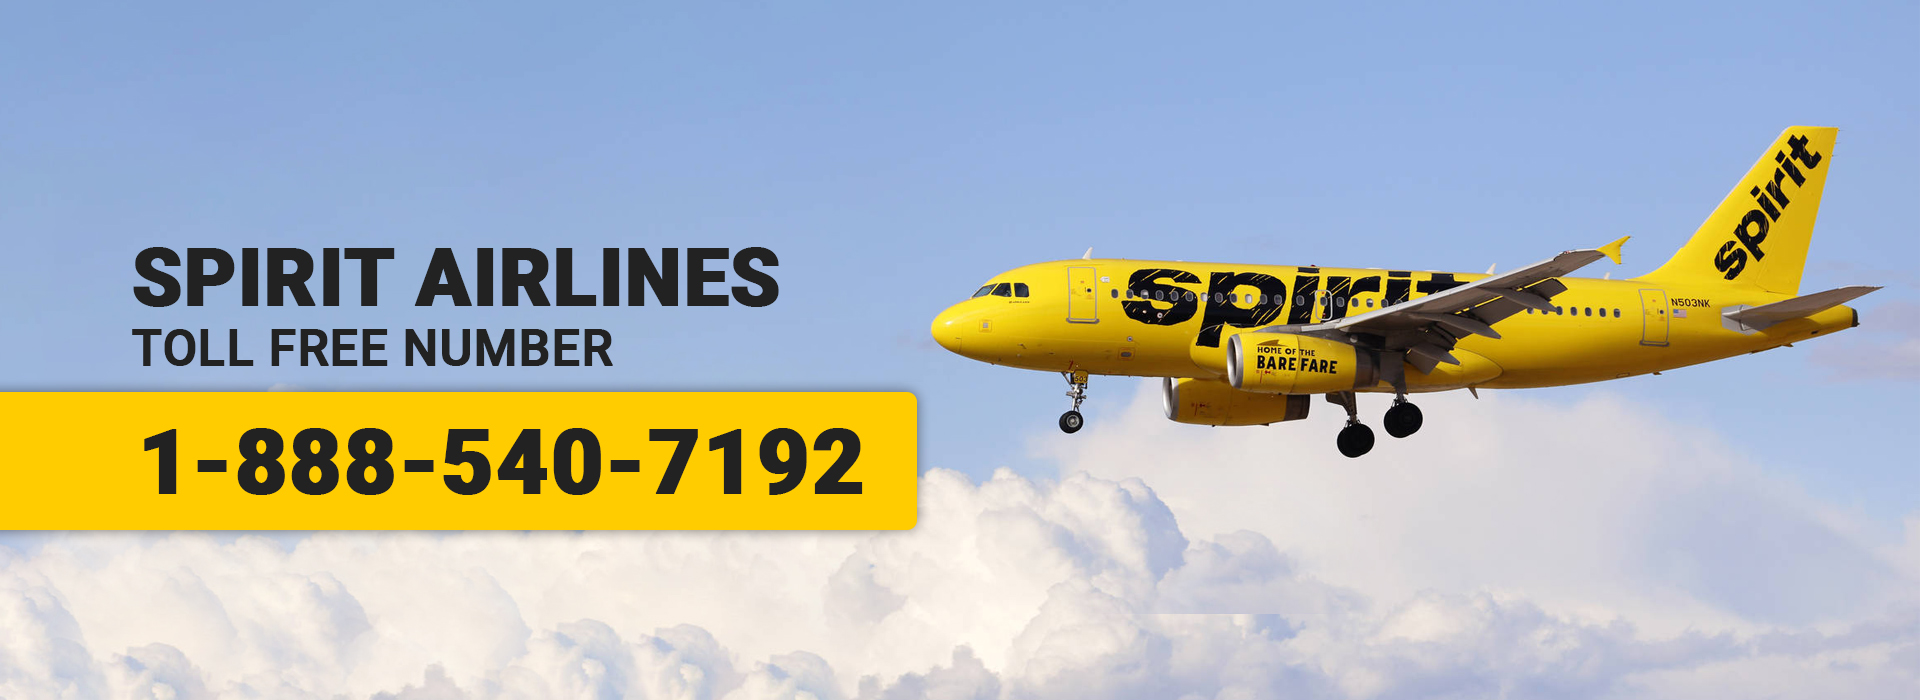 Spirit Airlines Support Number 1-888-540-7192